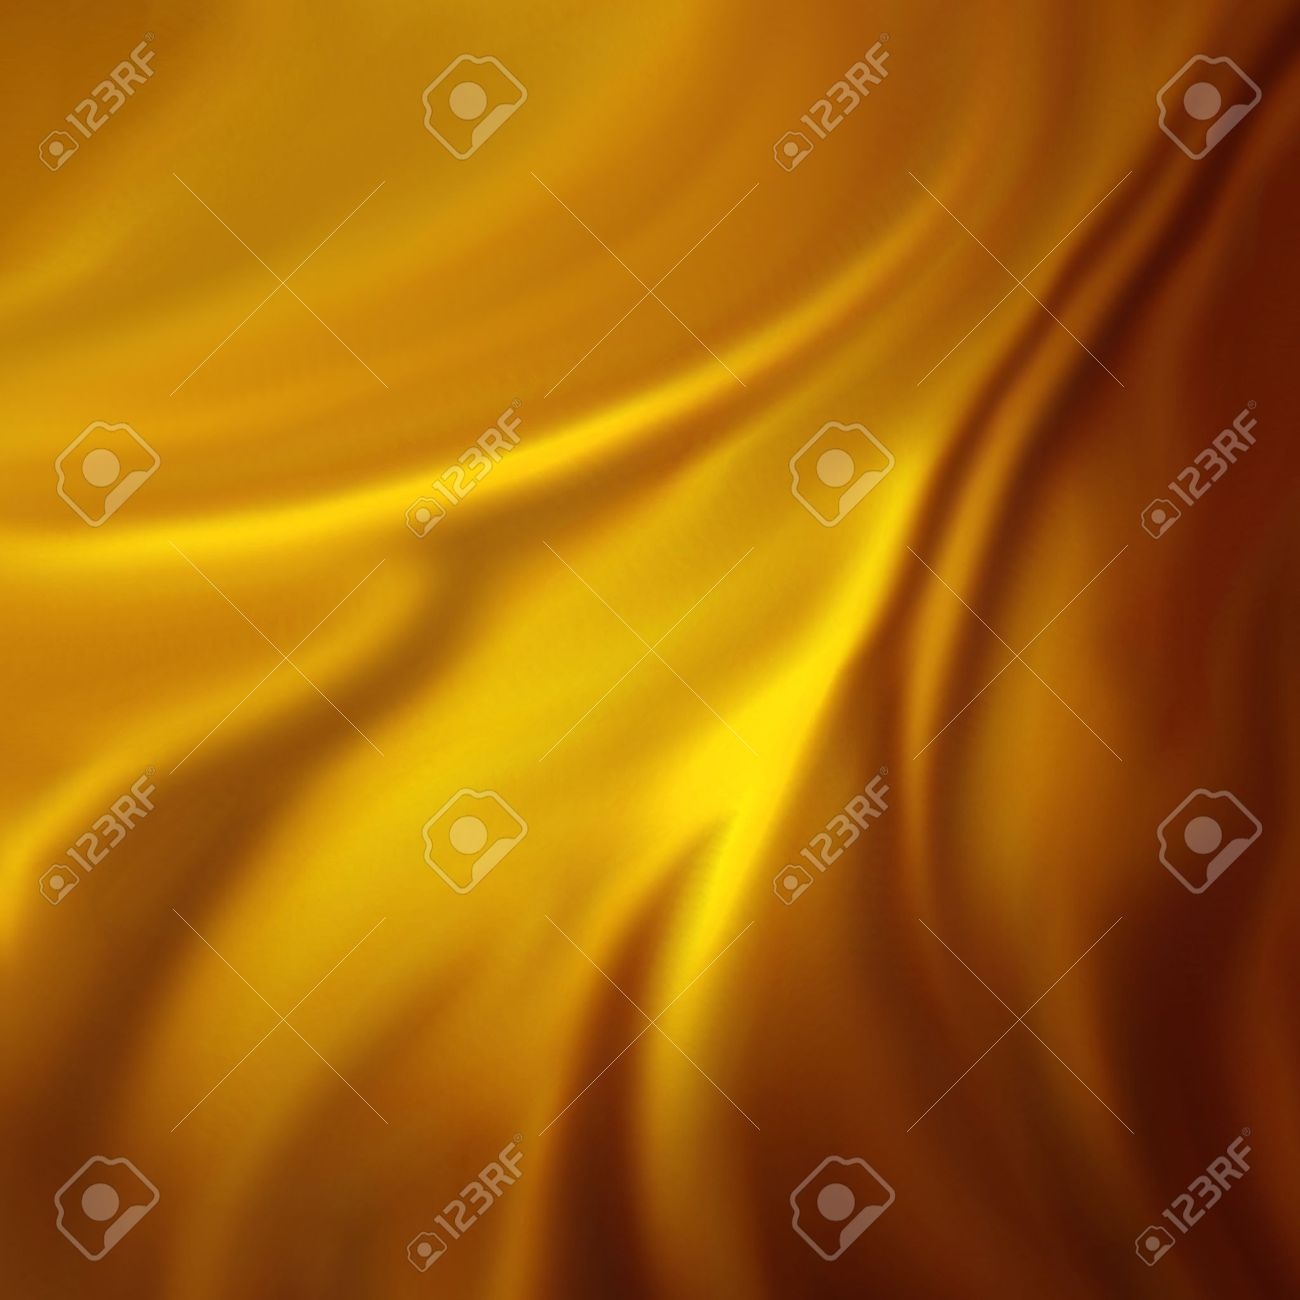 abstract gold background luxury cloth or liquid wave or wavy folds of grunge silk texture satin velvet material or gold luxurious Christmas background or elegant wallpaper design, yellow background Stock Photo - 13544288